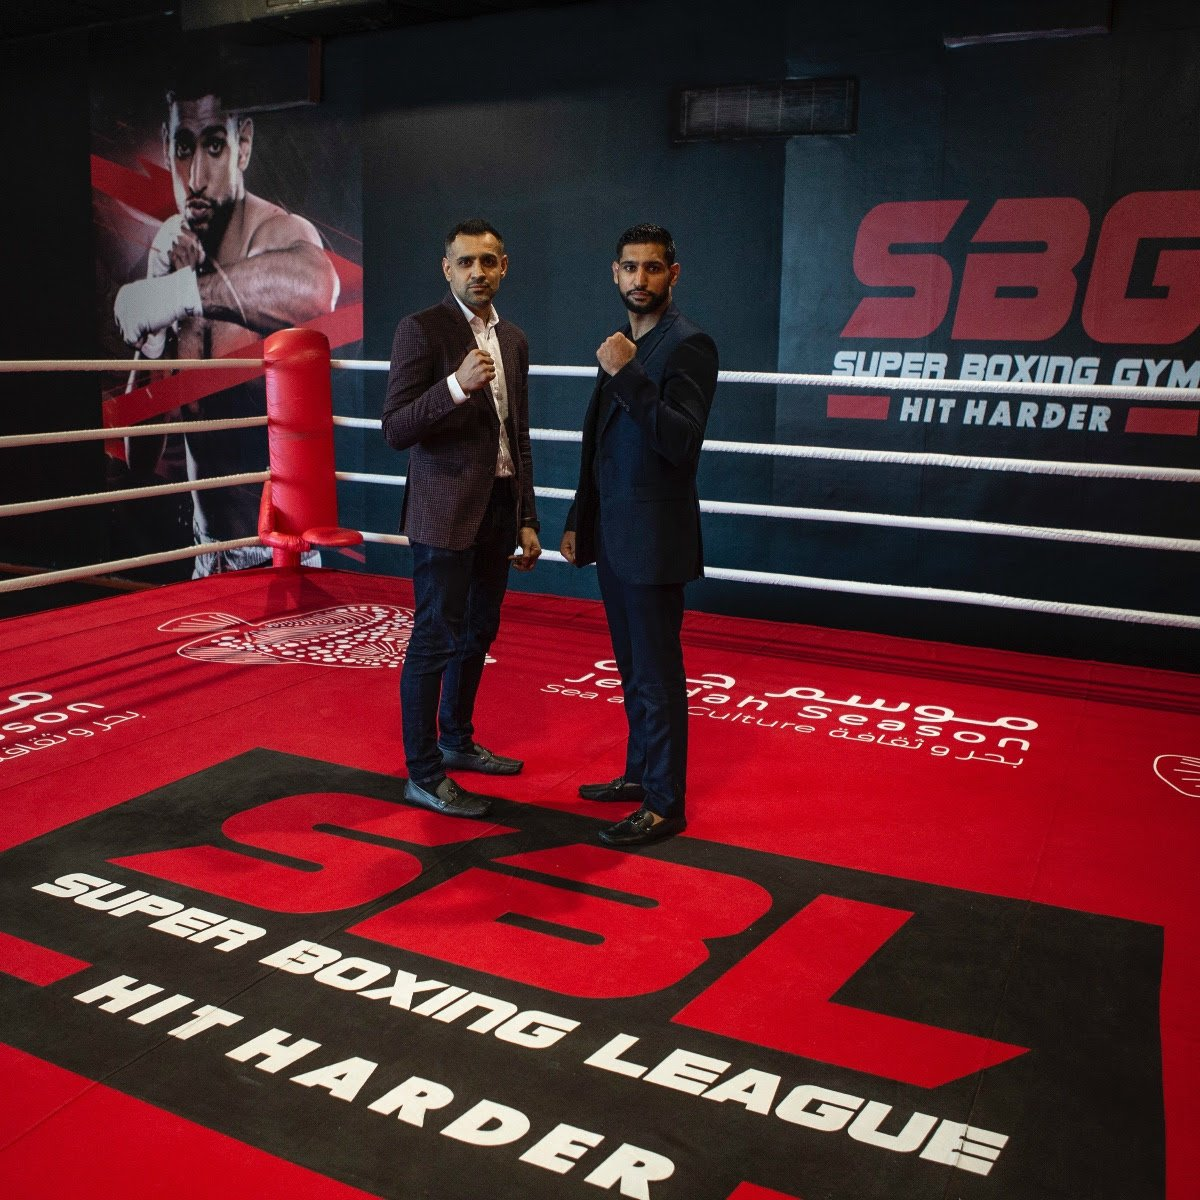 - Amir Khan and Bill Dosanjh of the Super Boxing League (SBL) today announced an exclusive and groundbreaking partnership agreement with Fitness Time Gym that will initially see eight Super Boxing Gyms opening at properties in key cities throughout Saudi Arabia.